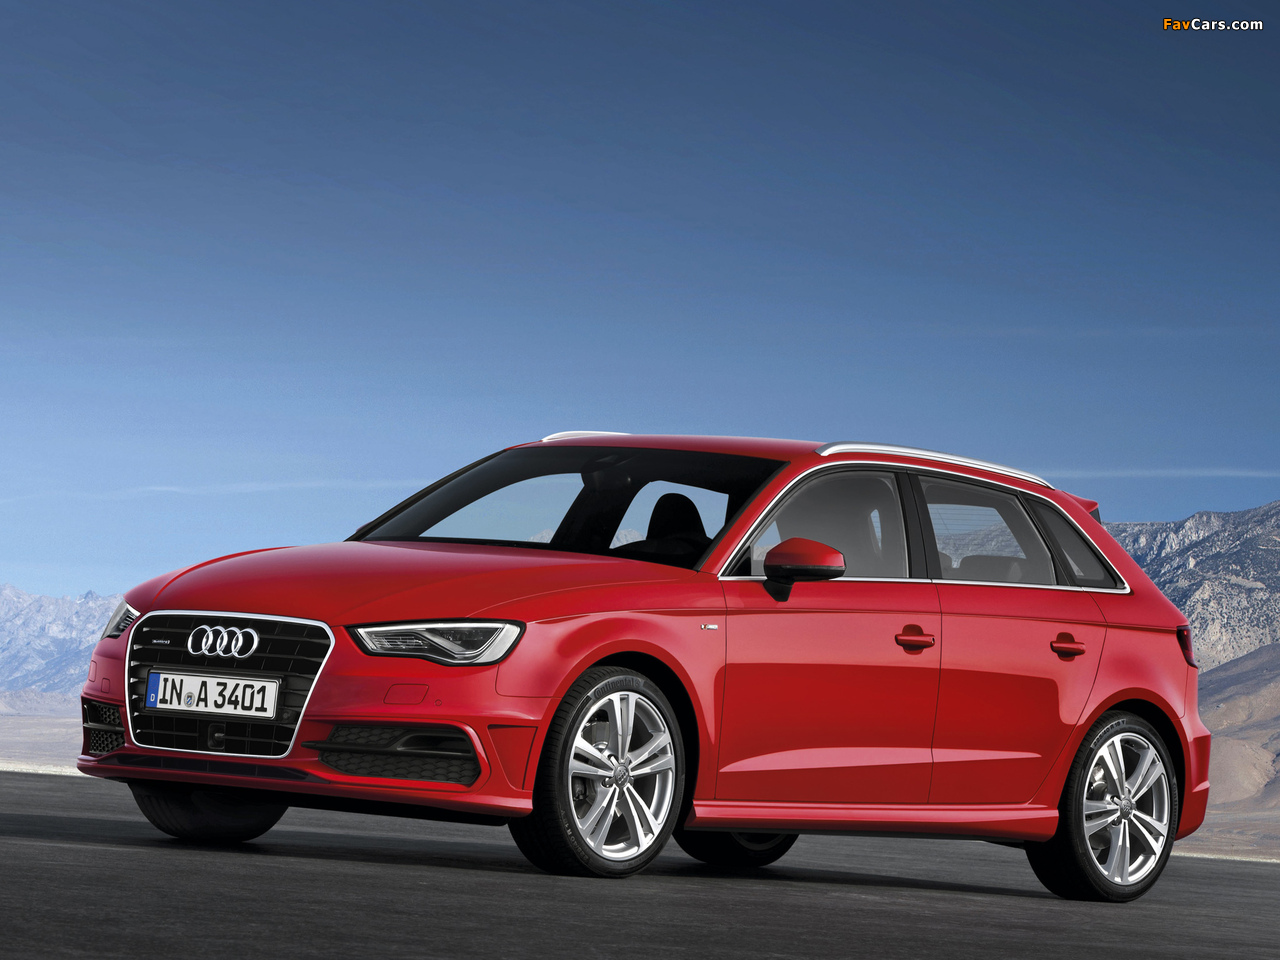 Pictures Of Audi A3 Sportback 2 0t S Line Quattro 8v 2012